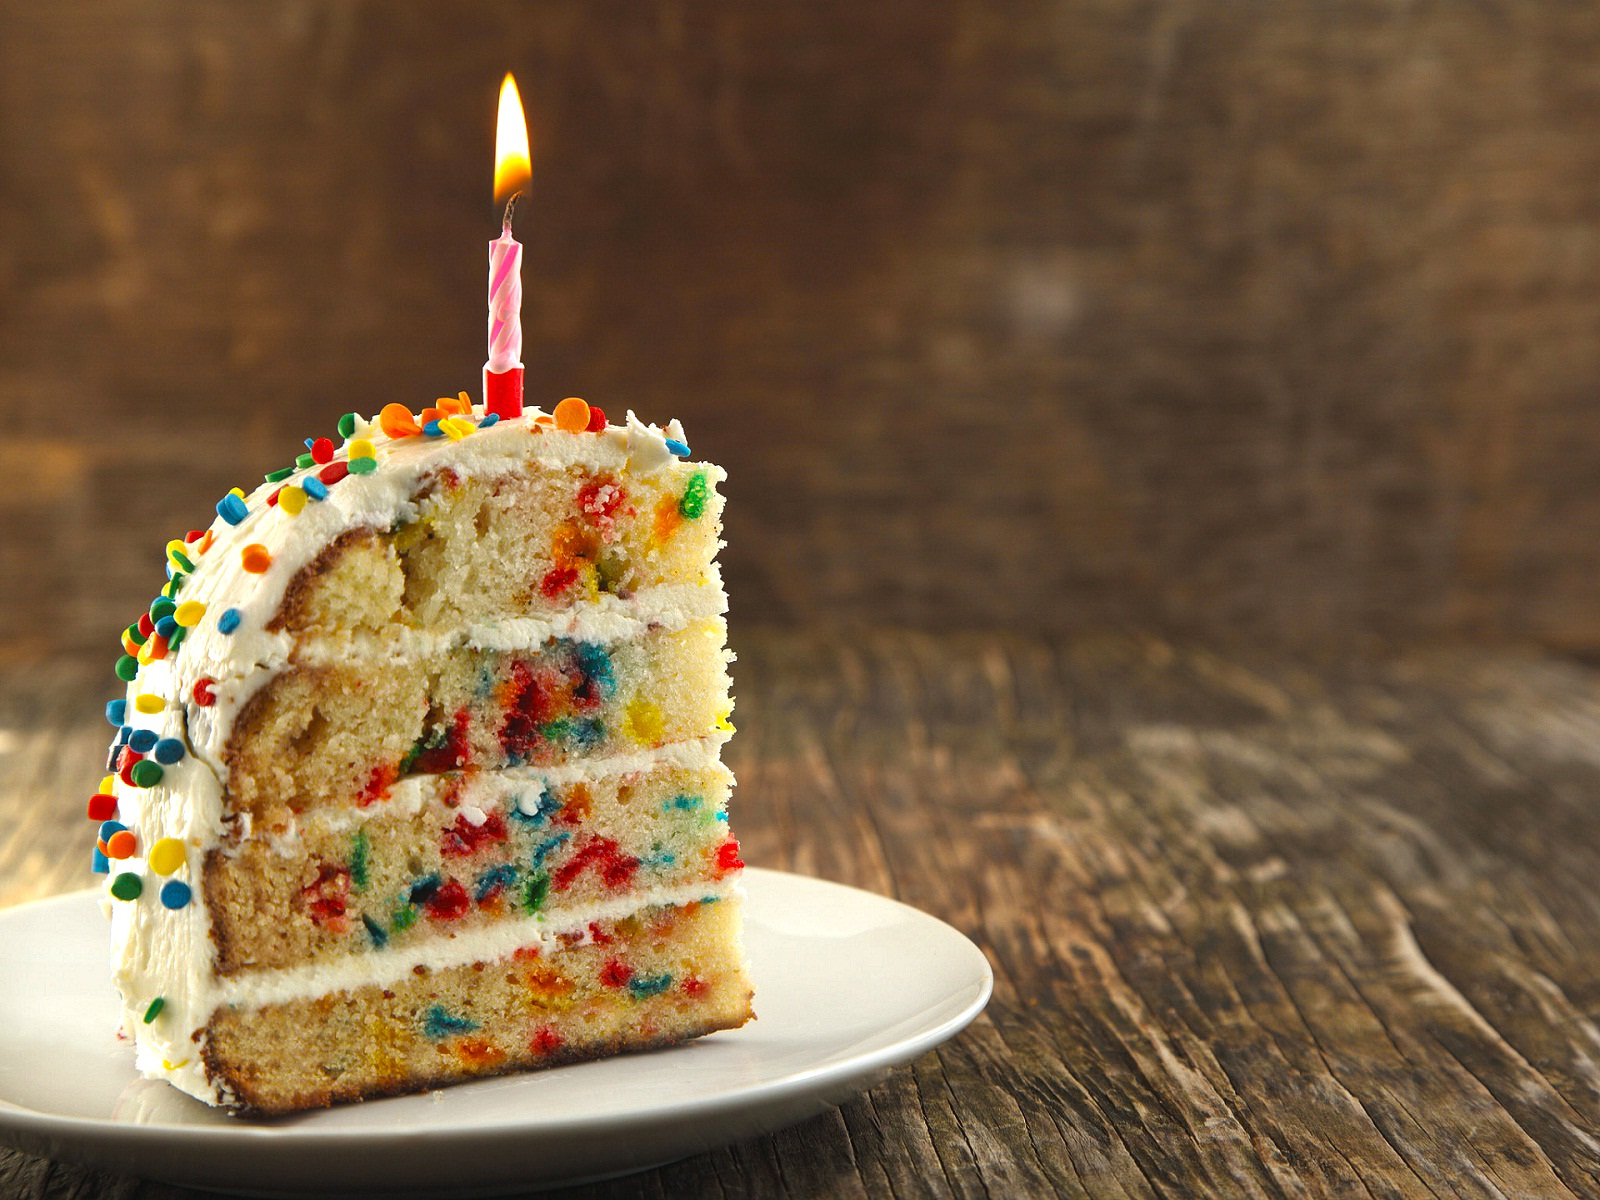 Images Hd Happy Cake Birthday